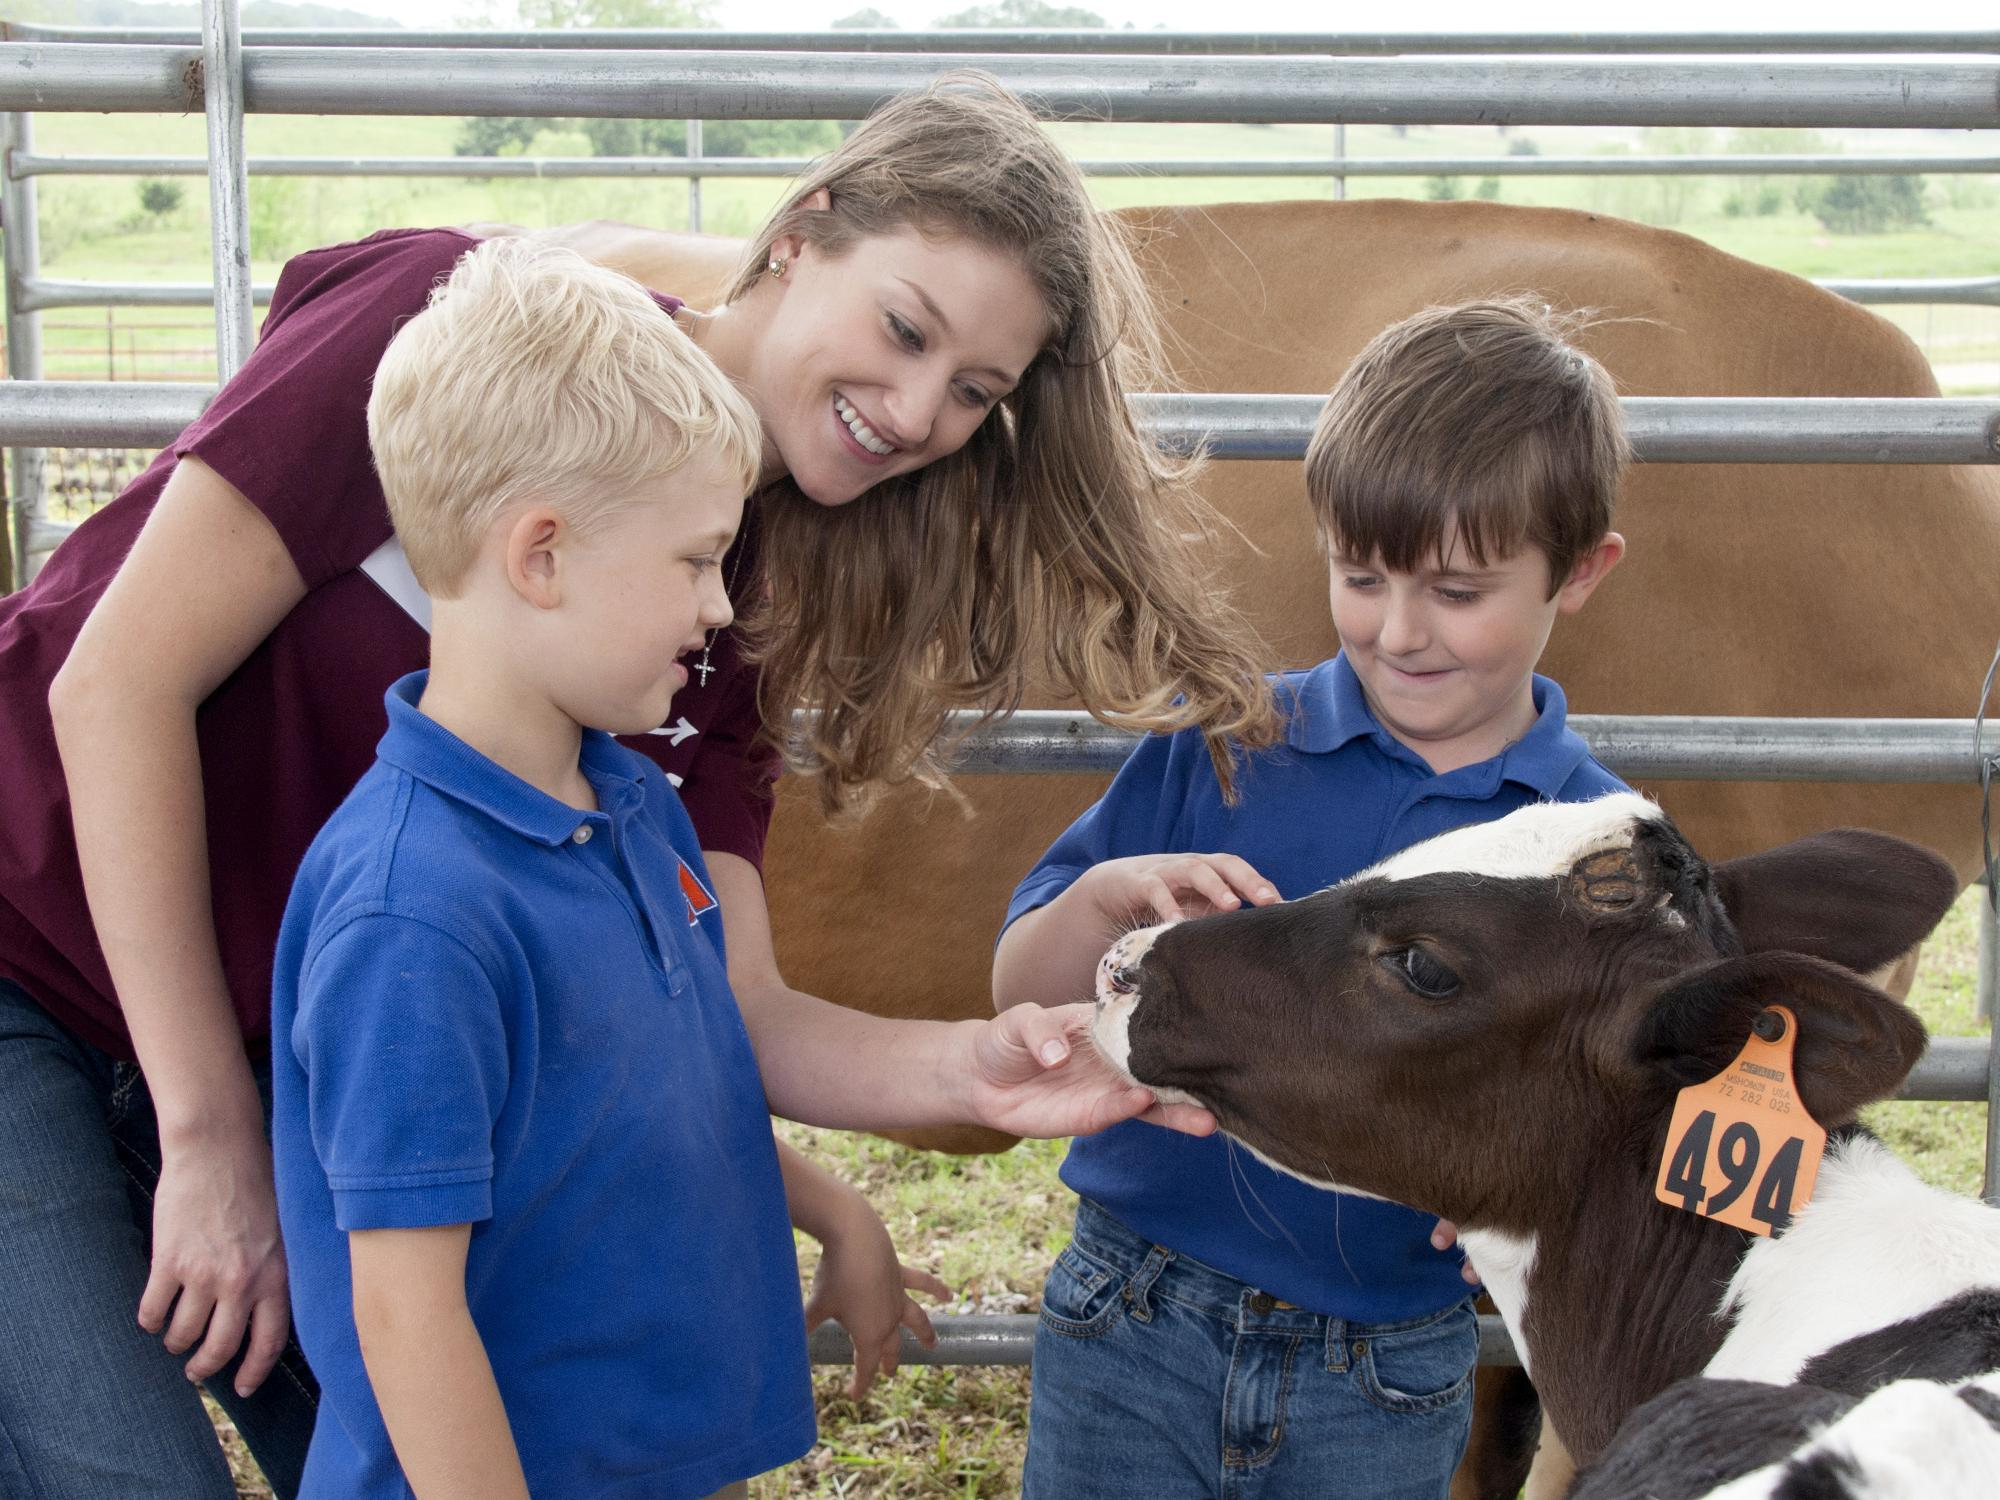 """Carley Wigley, a senior at Mississippi State University from Petal, Mississippi, introduces Luke Iglay and Sam Eifling to a calf during """"Afternoon on the Farm,"""" on April 29, 2016. The outreach program is part of the MSU Department of Animal and Dairy Science capstone course and teaches visiting students the fundamentals of livestock agriculture. (Photo by MSU Extension Service/Kat Lawrence)"""